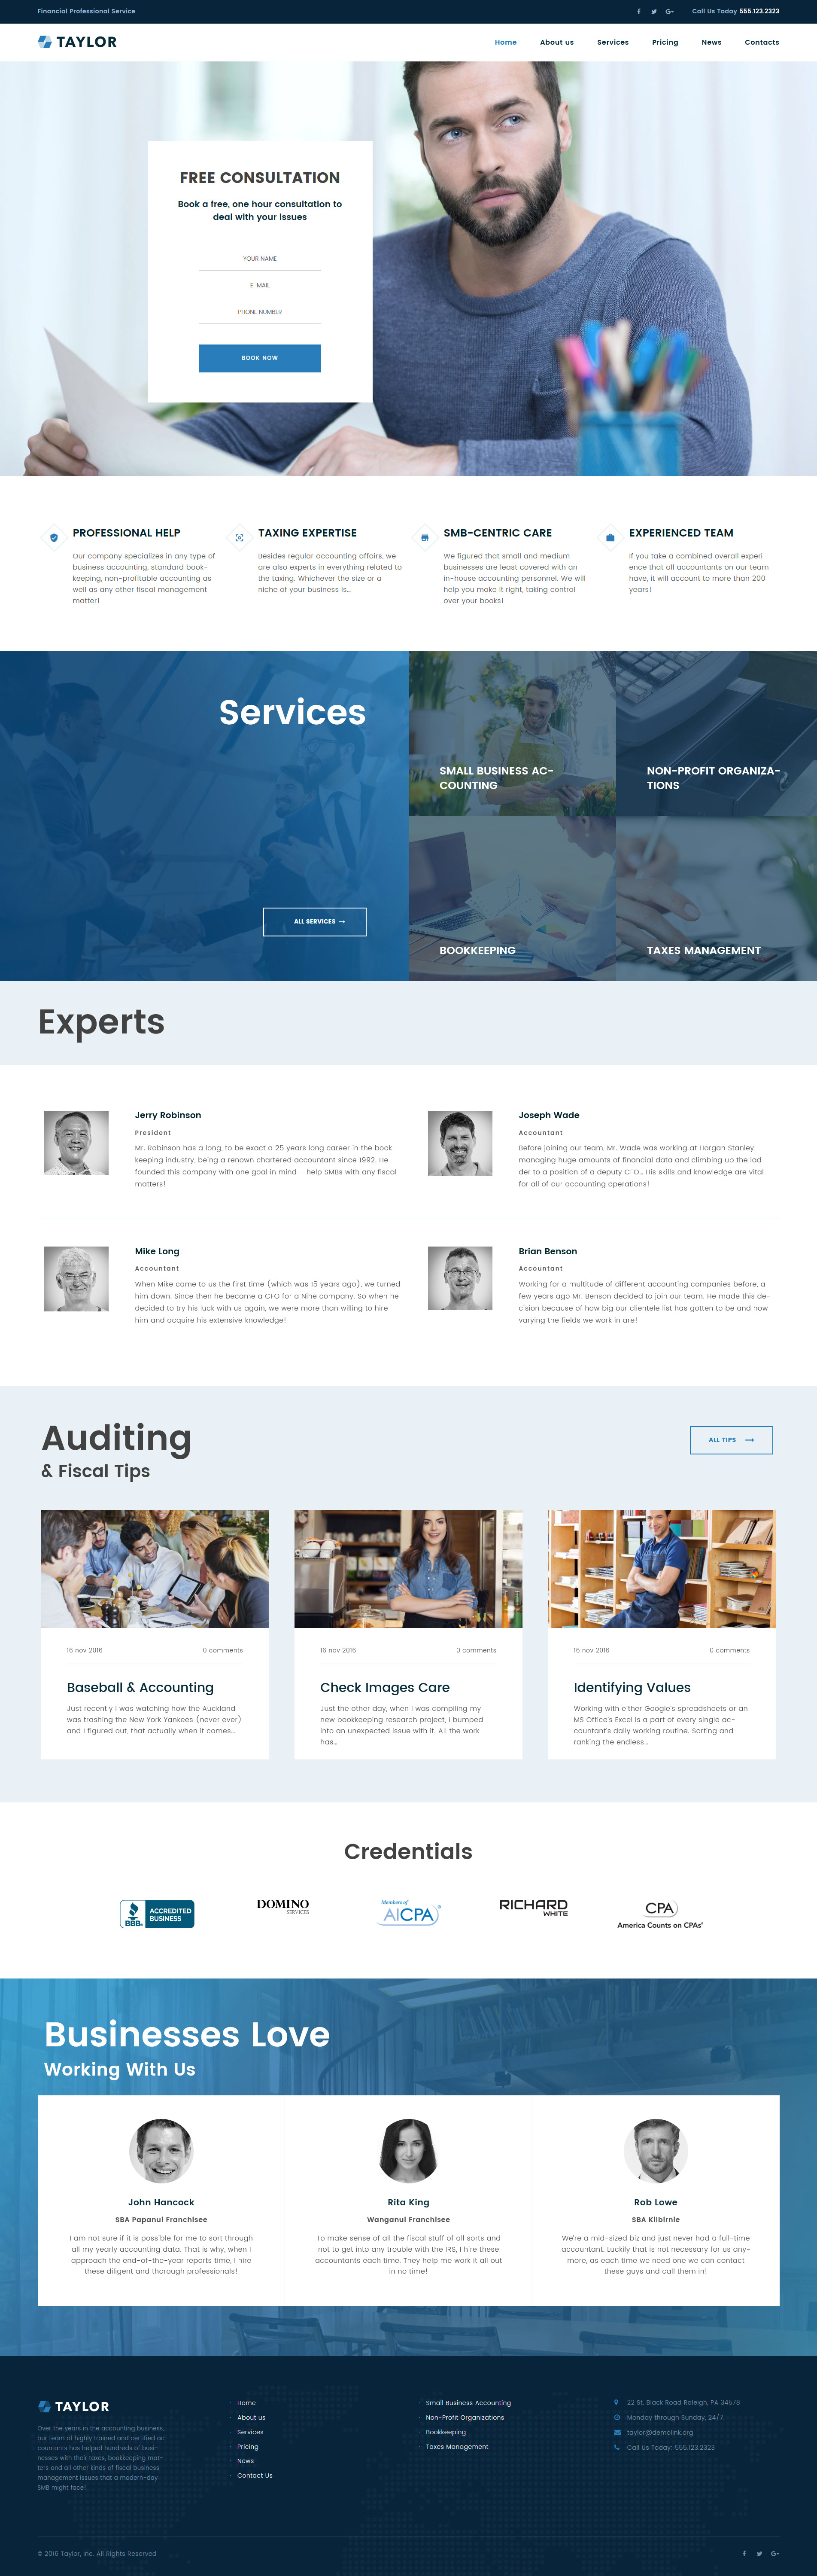 Taylor Financial Accounting Wordpress Theme